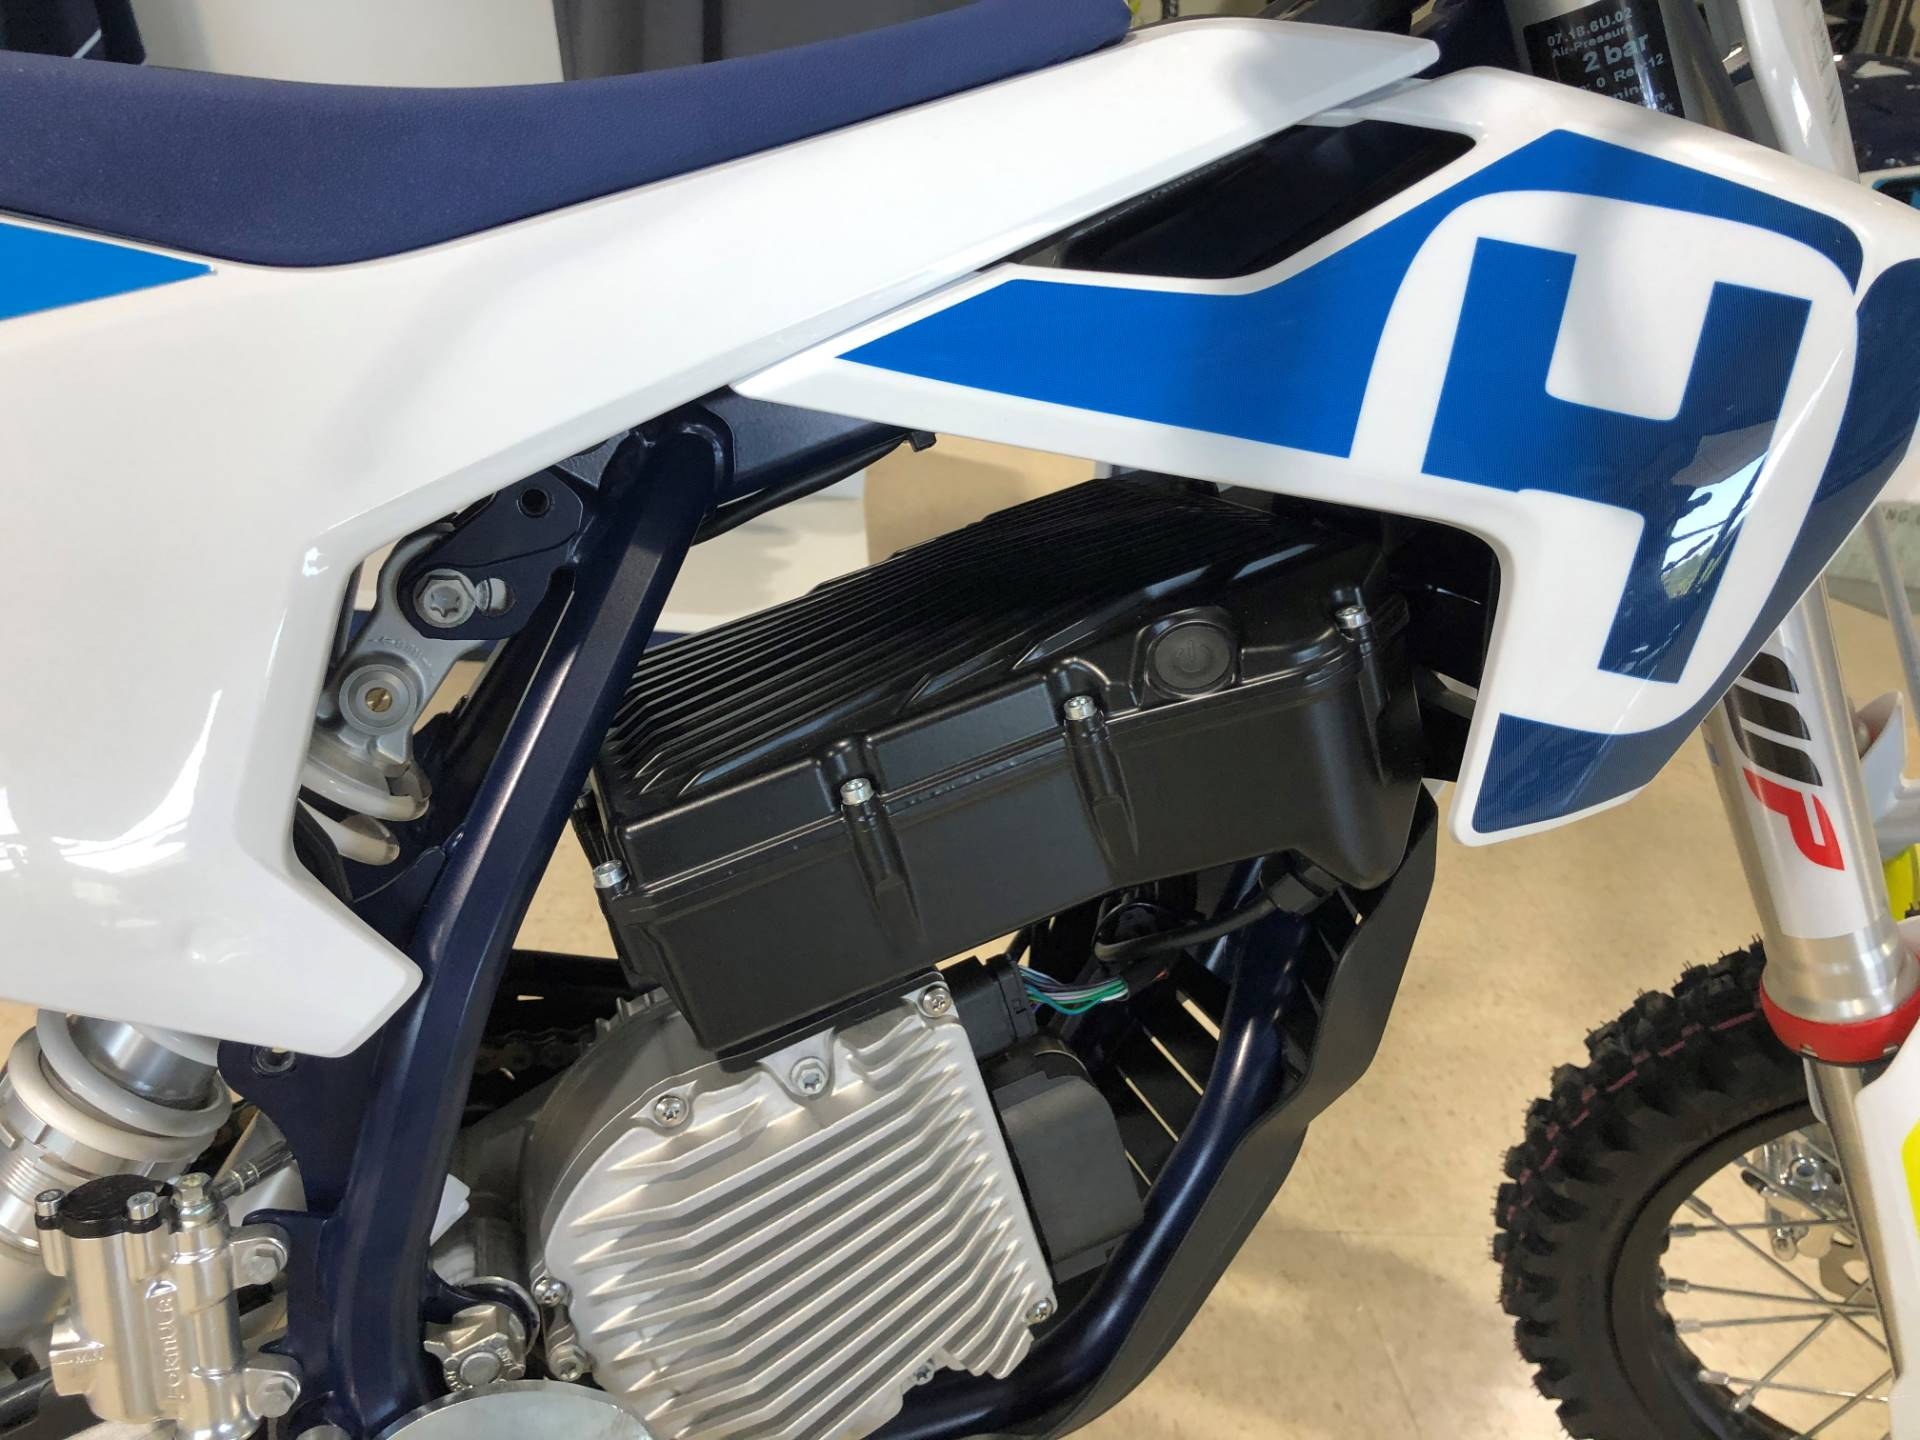 2021 Husqvarna EE 5 in Slovan, Pennsylvania - Photo 2